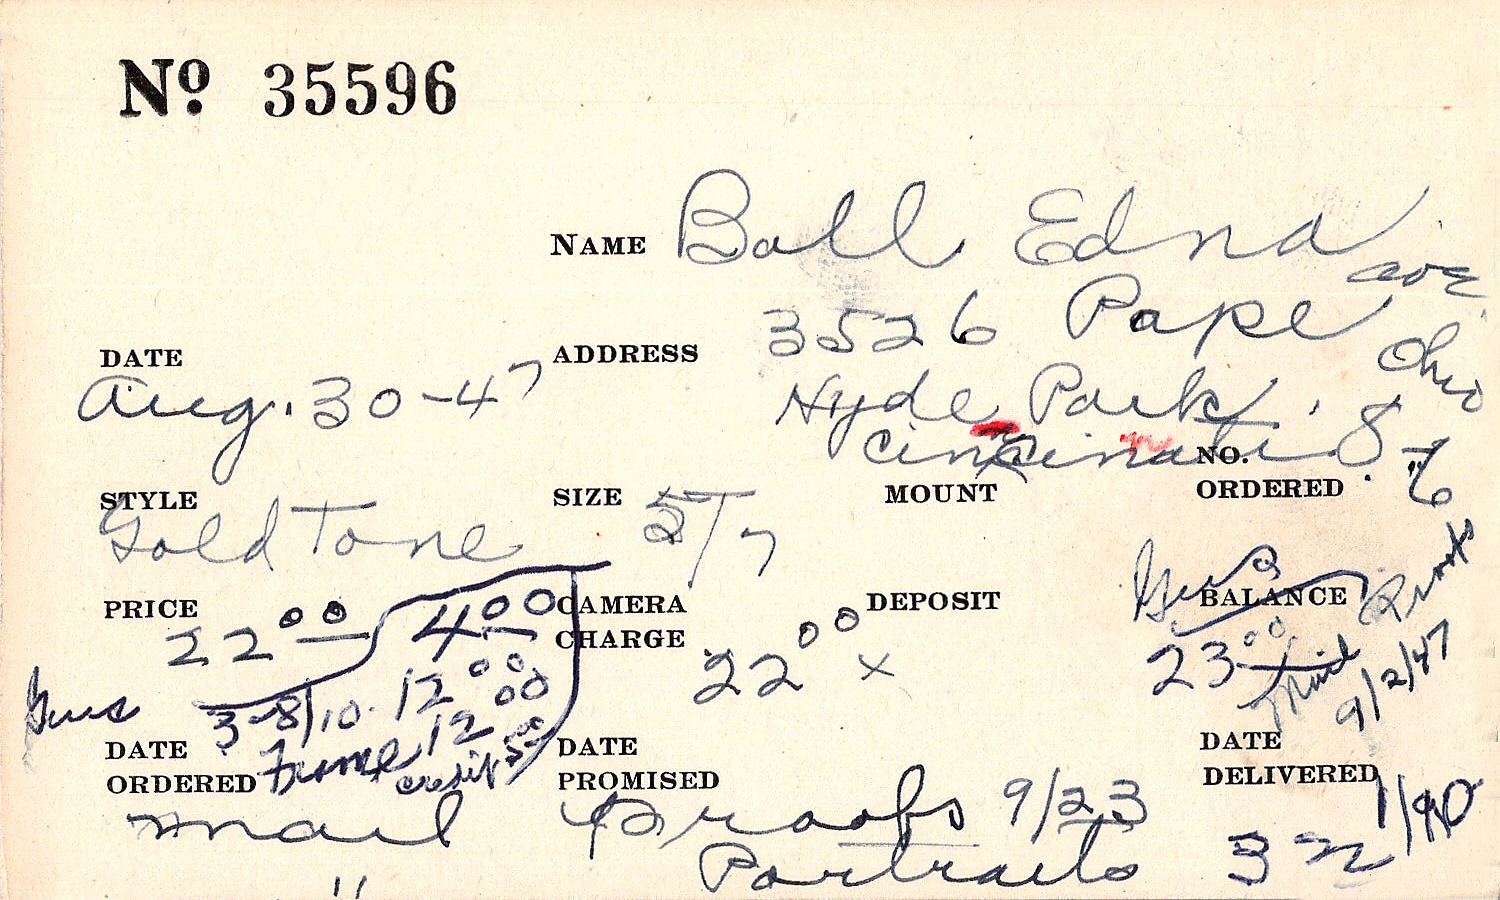 Index card for Edna Ball